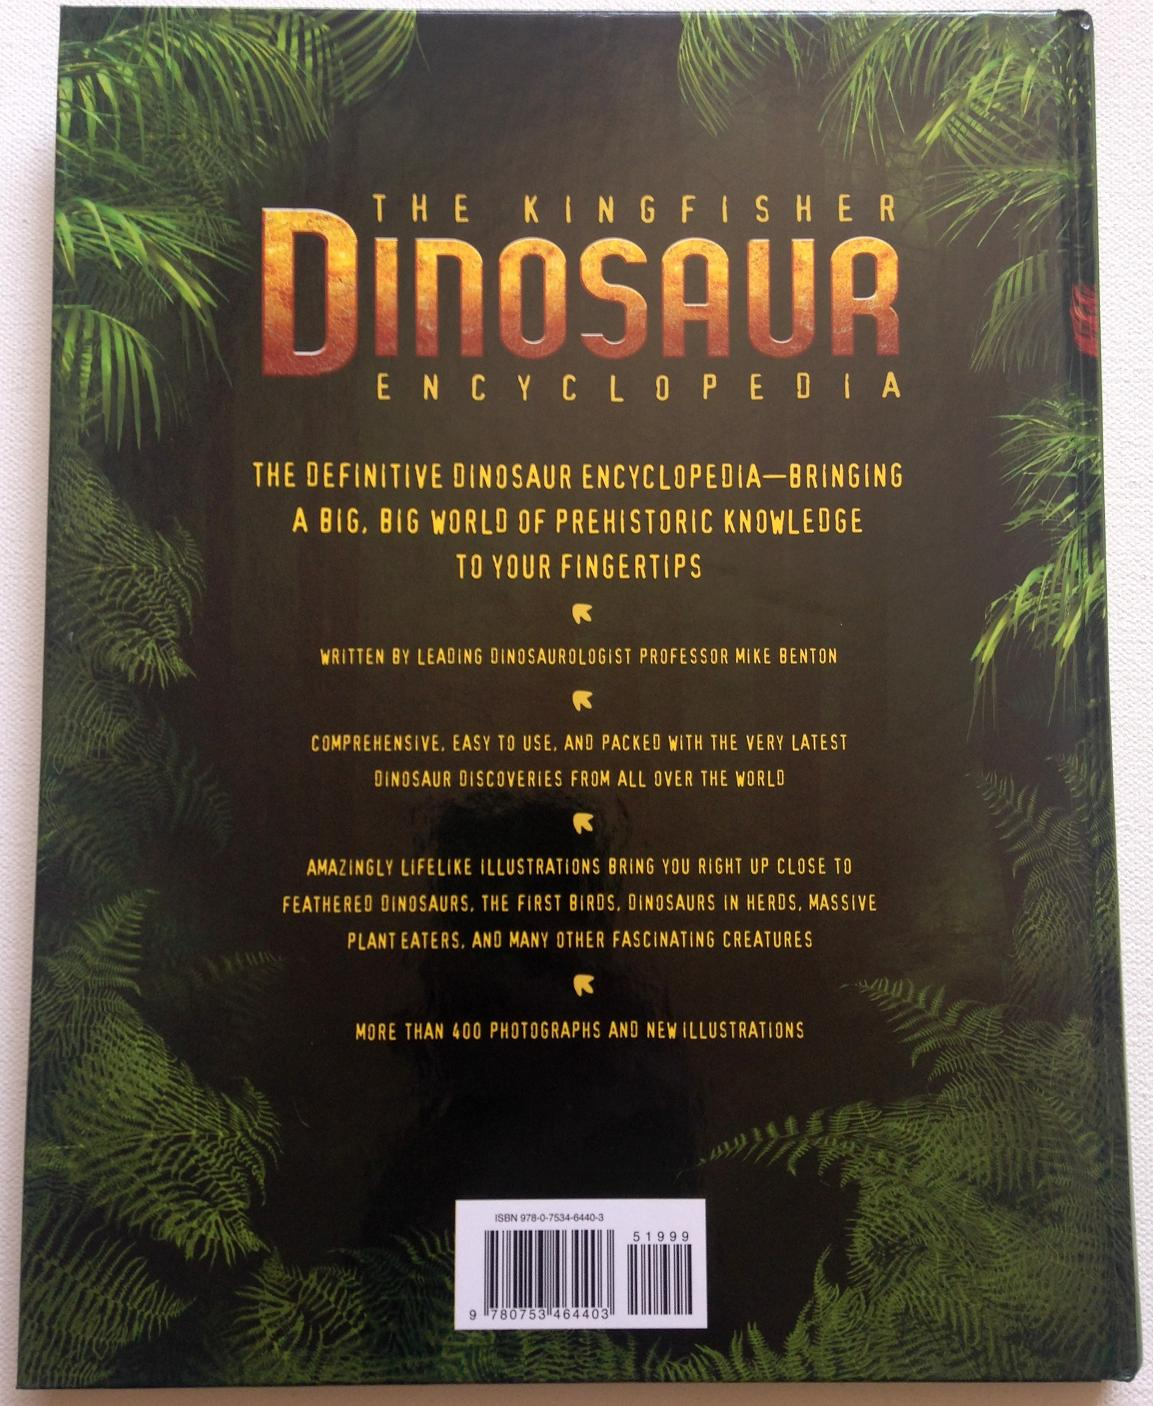 kingfisher dinosaur encyclopedia (3)